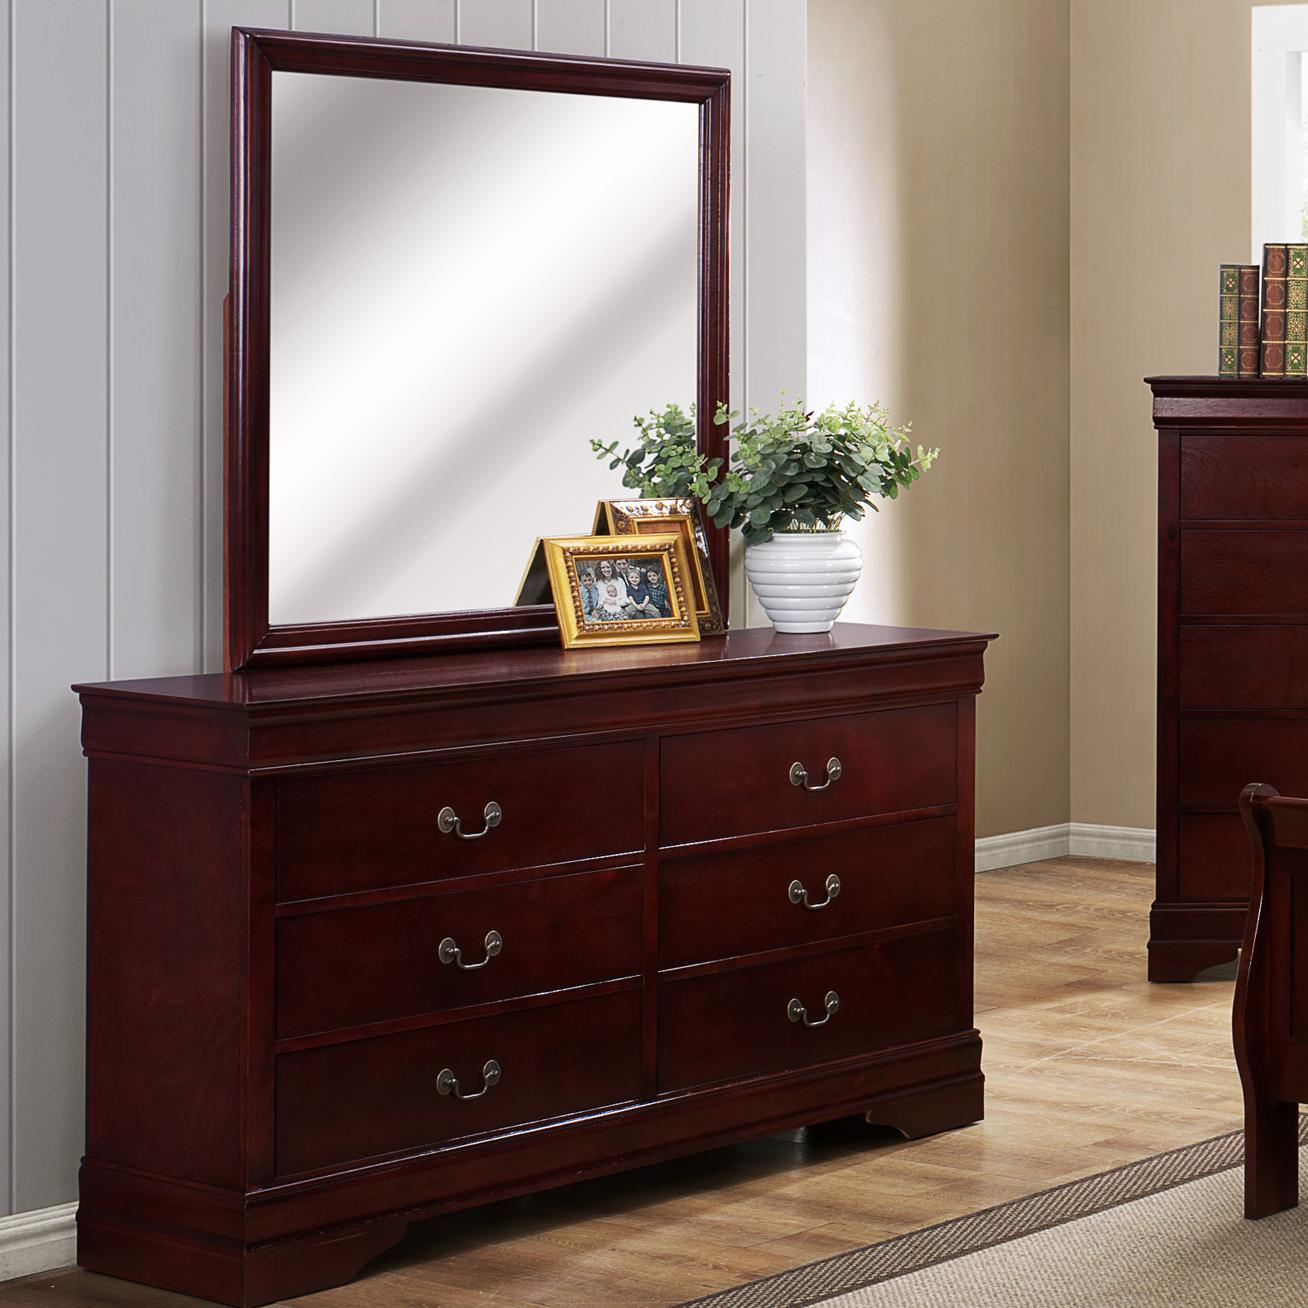 Crown mark b3800 louis phillipe 6 drawer dresser with for Bedroom bureau knobs